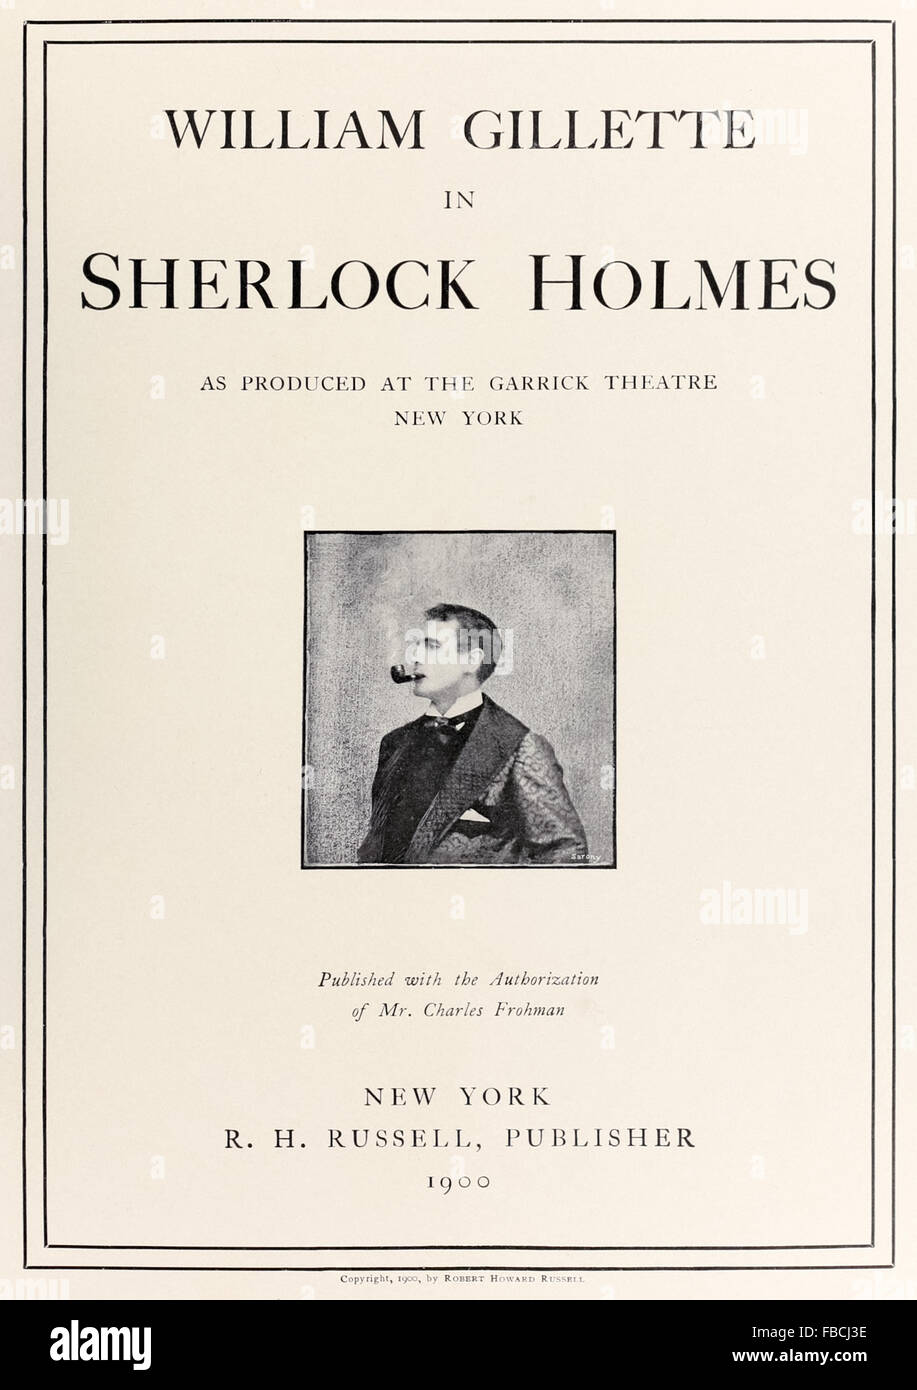 Title page from souvenir album for 'Sherlock Holmes' play adapted from storied by Sir Arthur Conan Doyle - Stock Image